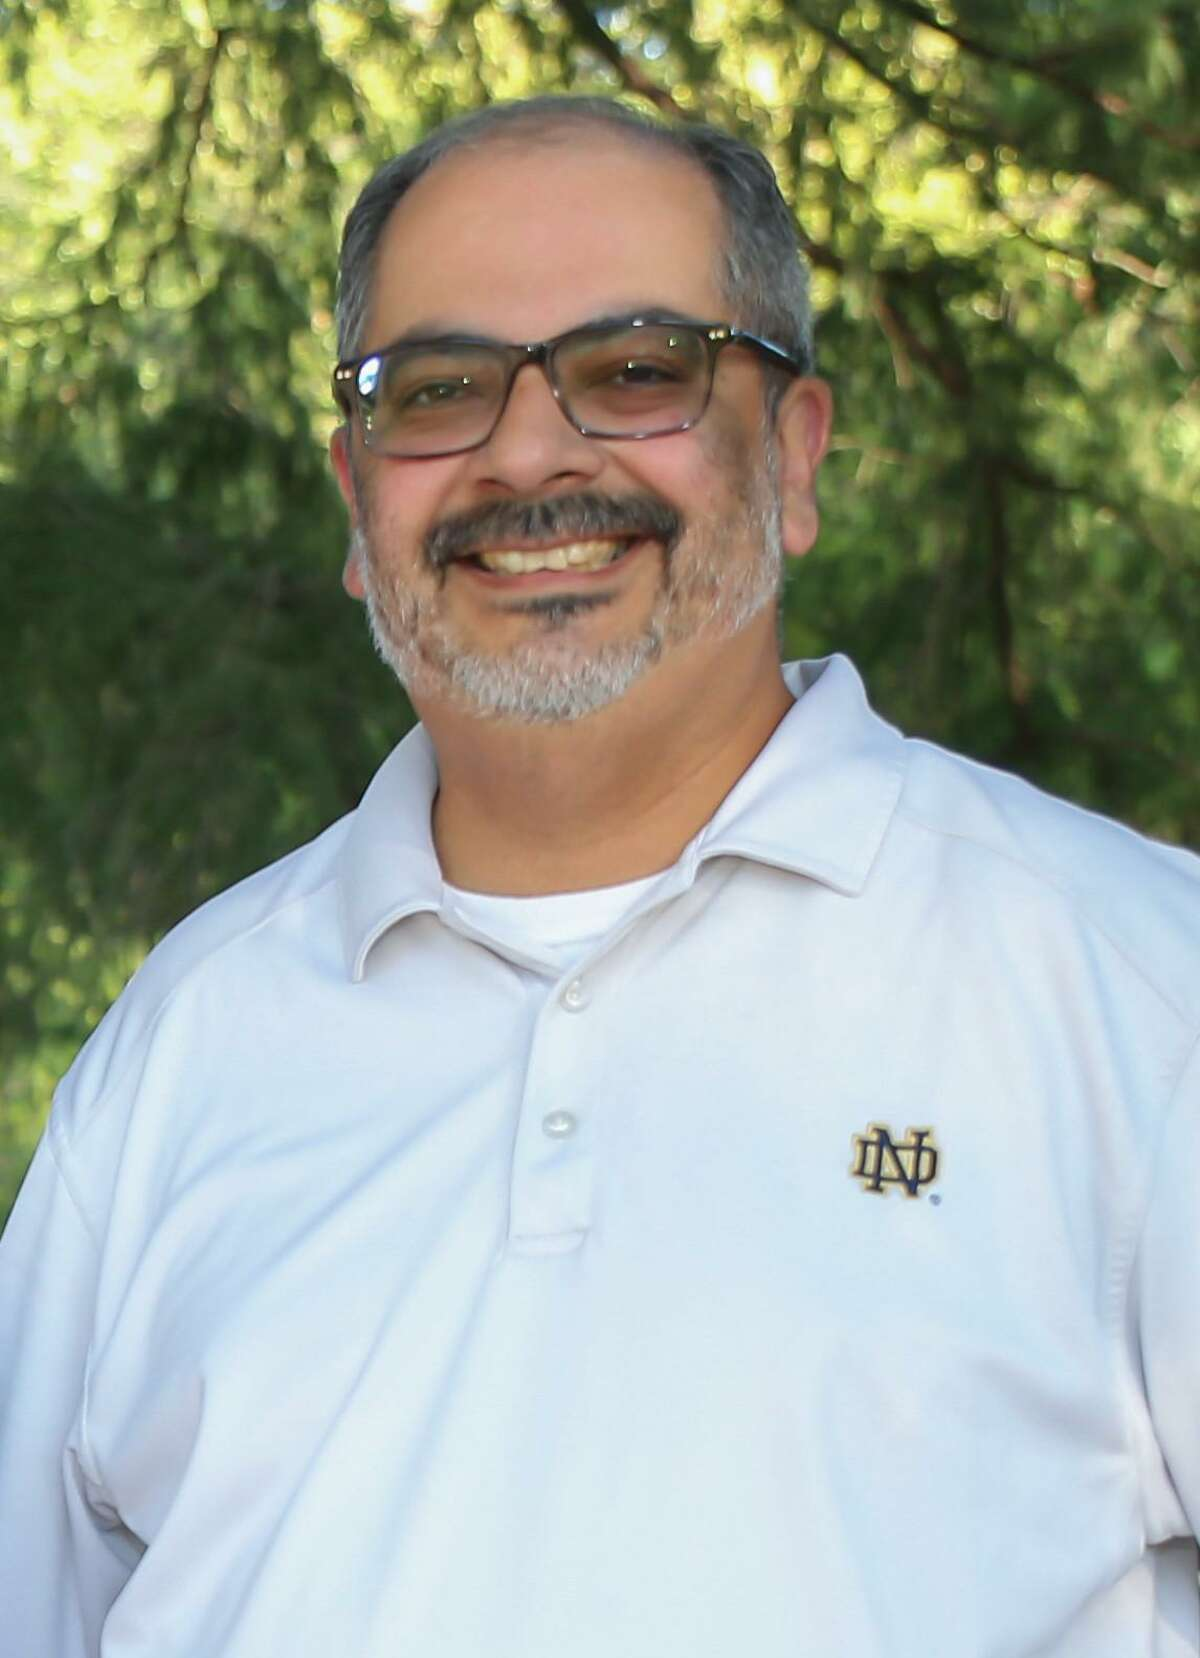 Emilio Silvas, 50, is challenging incumbent Rafael Diaz for the District 7 at-large seat on the Judson ISD board.